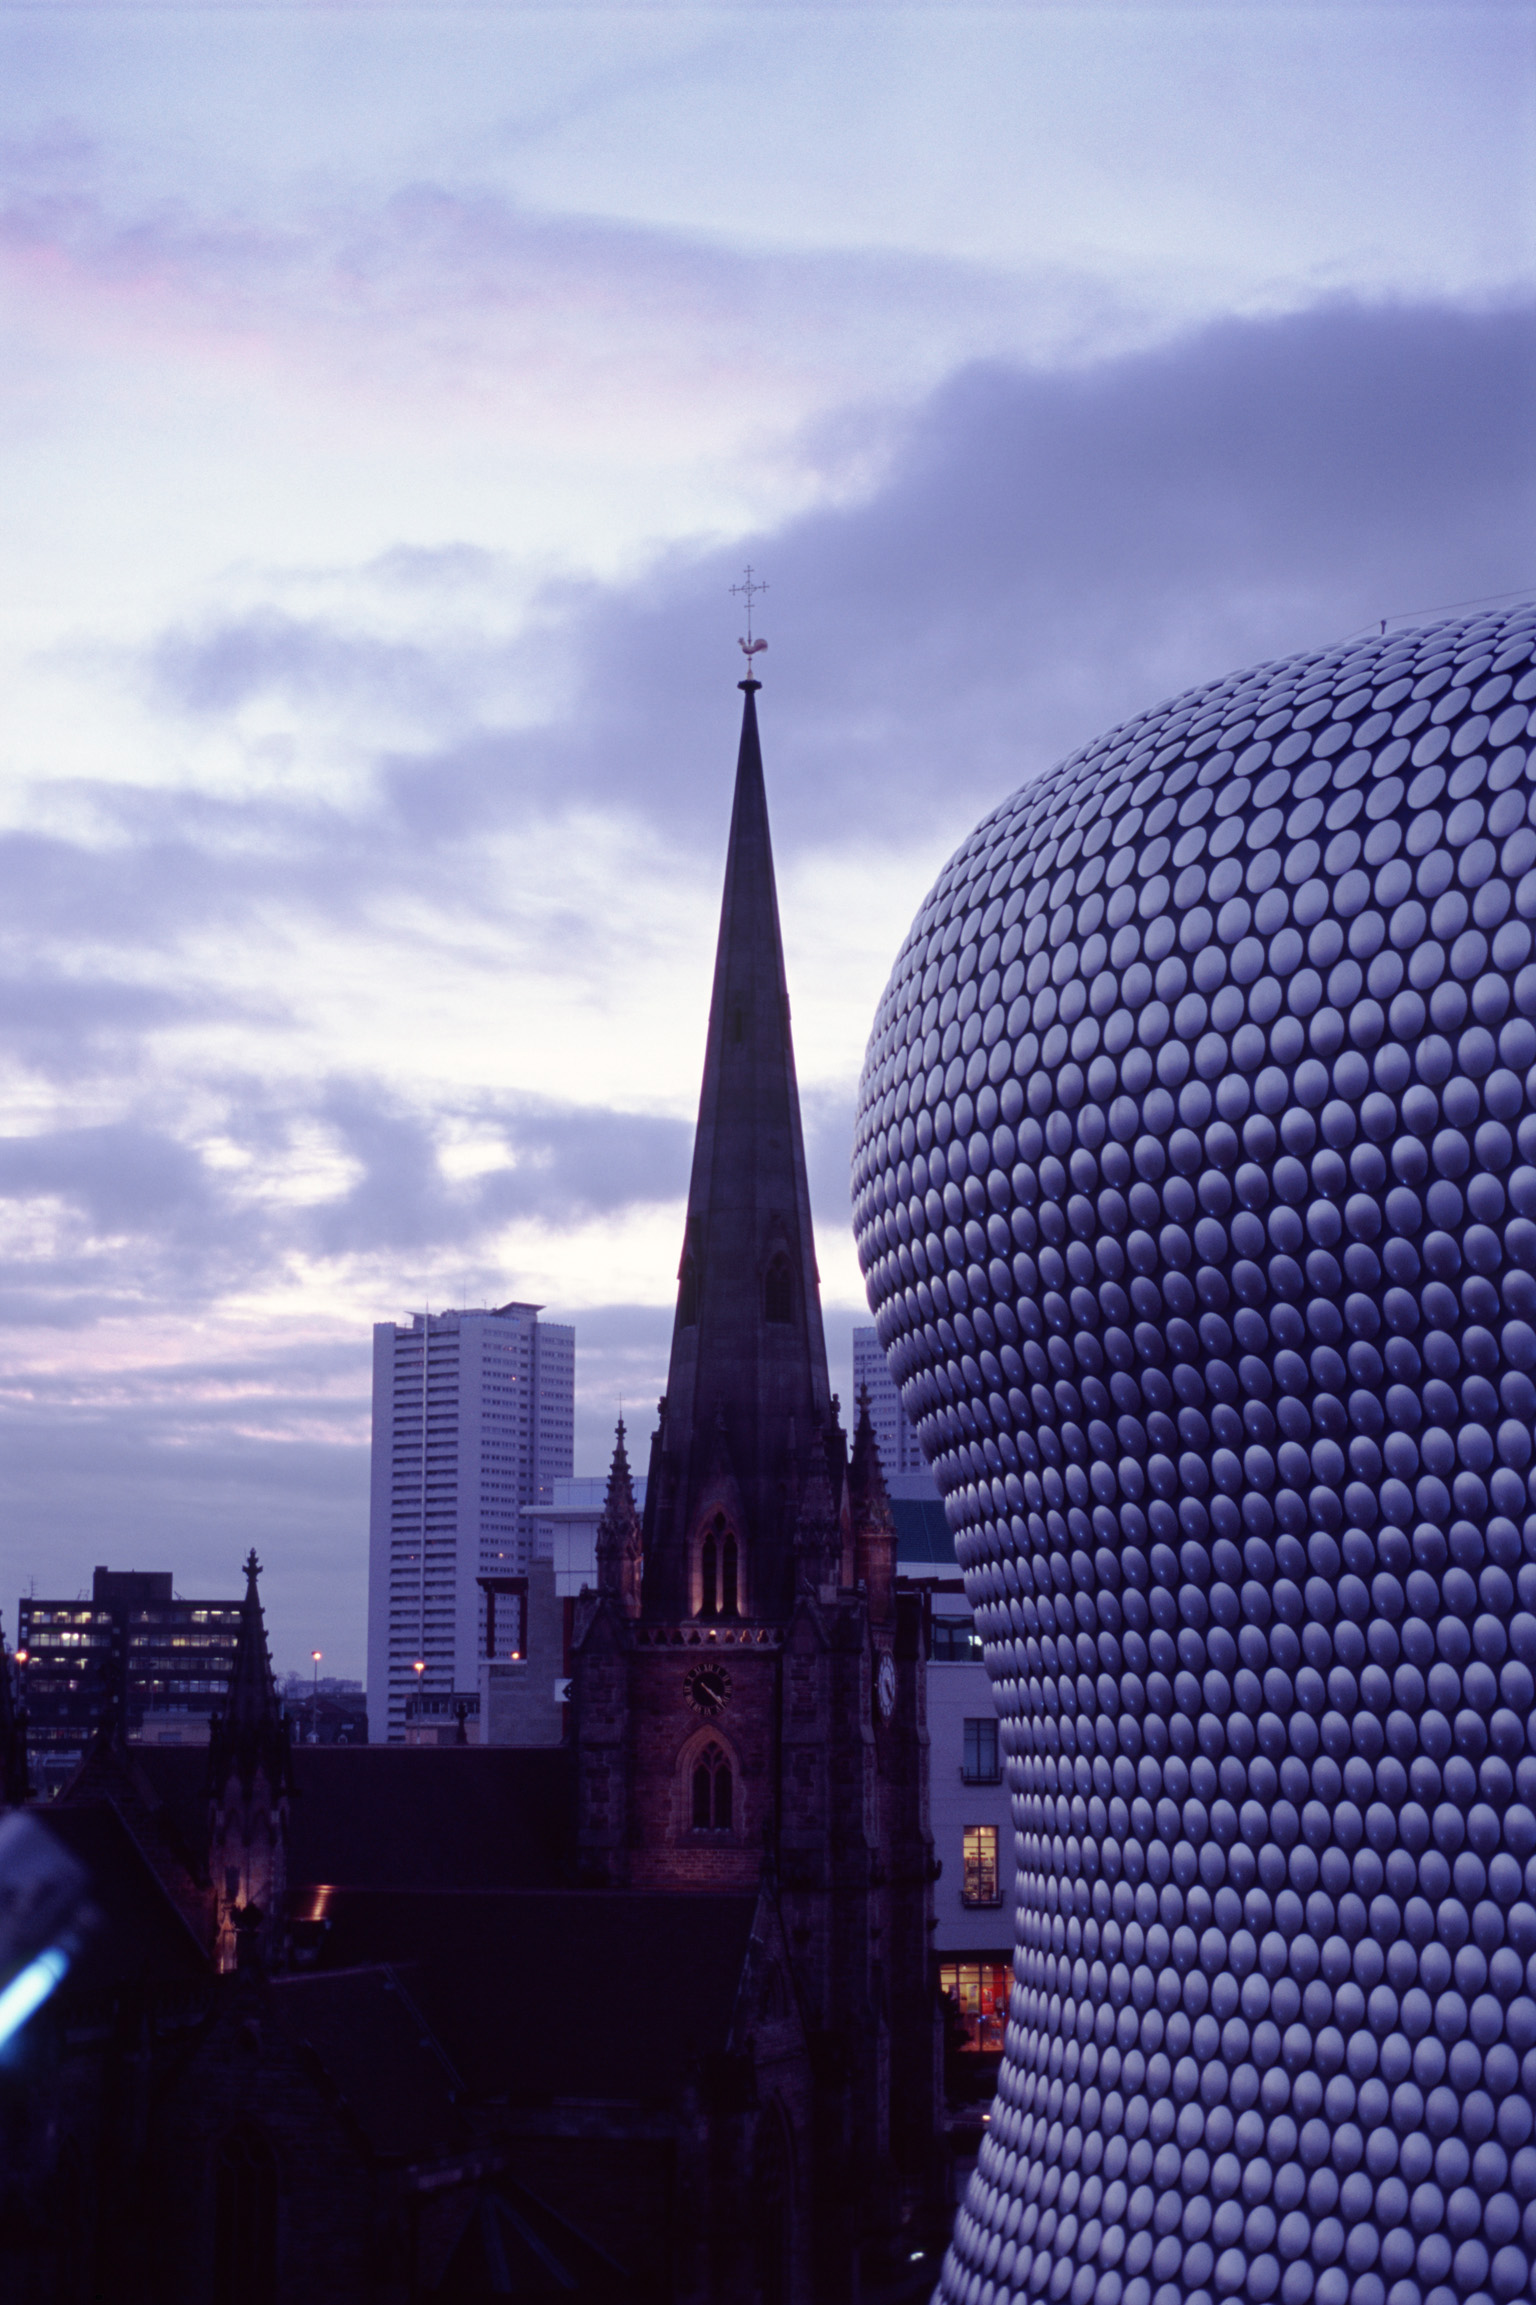 Modern curved exterior facade of the Bullring Shopping Centre with St Martins spire in the background at dusk, Birmingham, UK